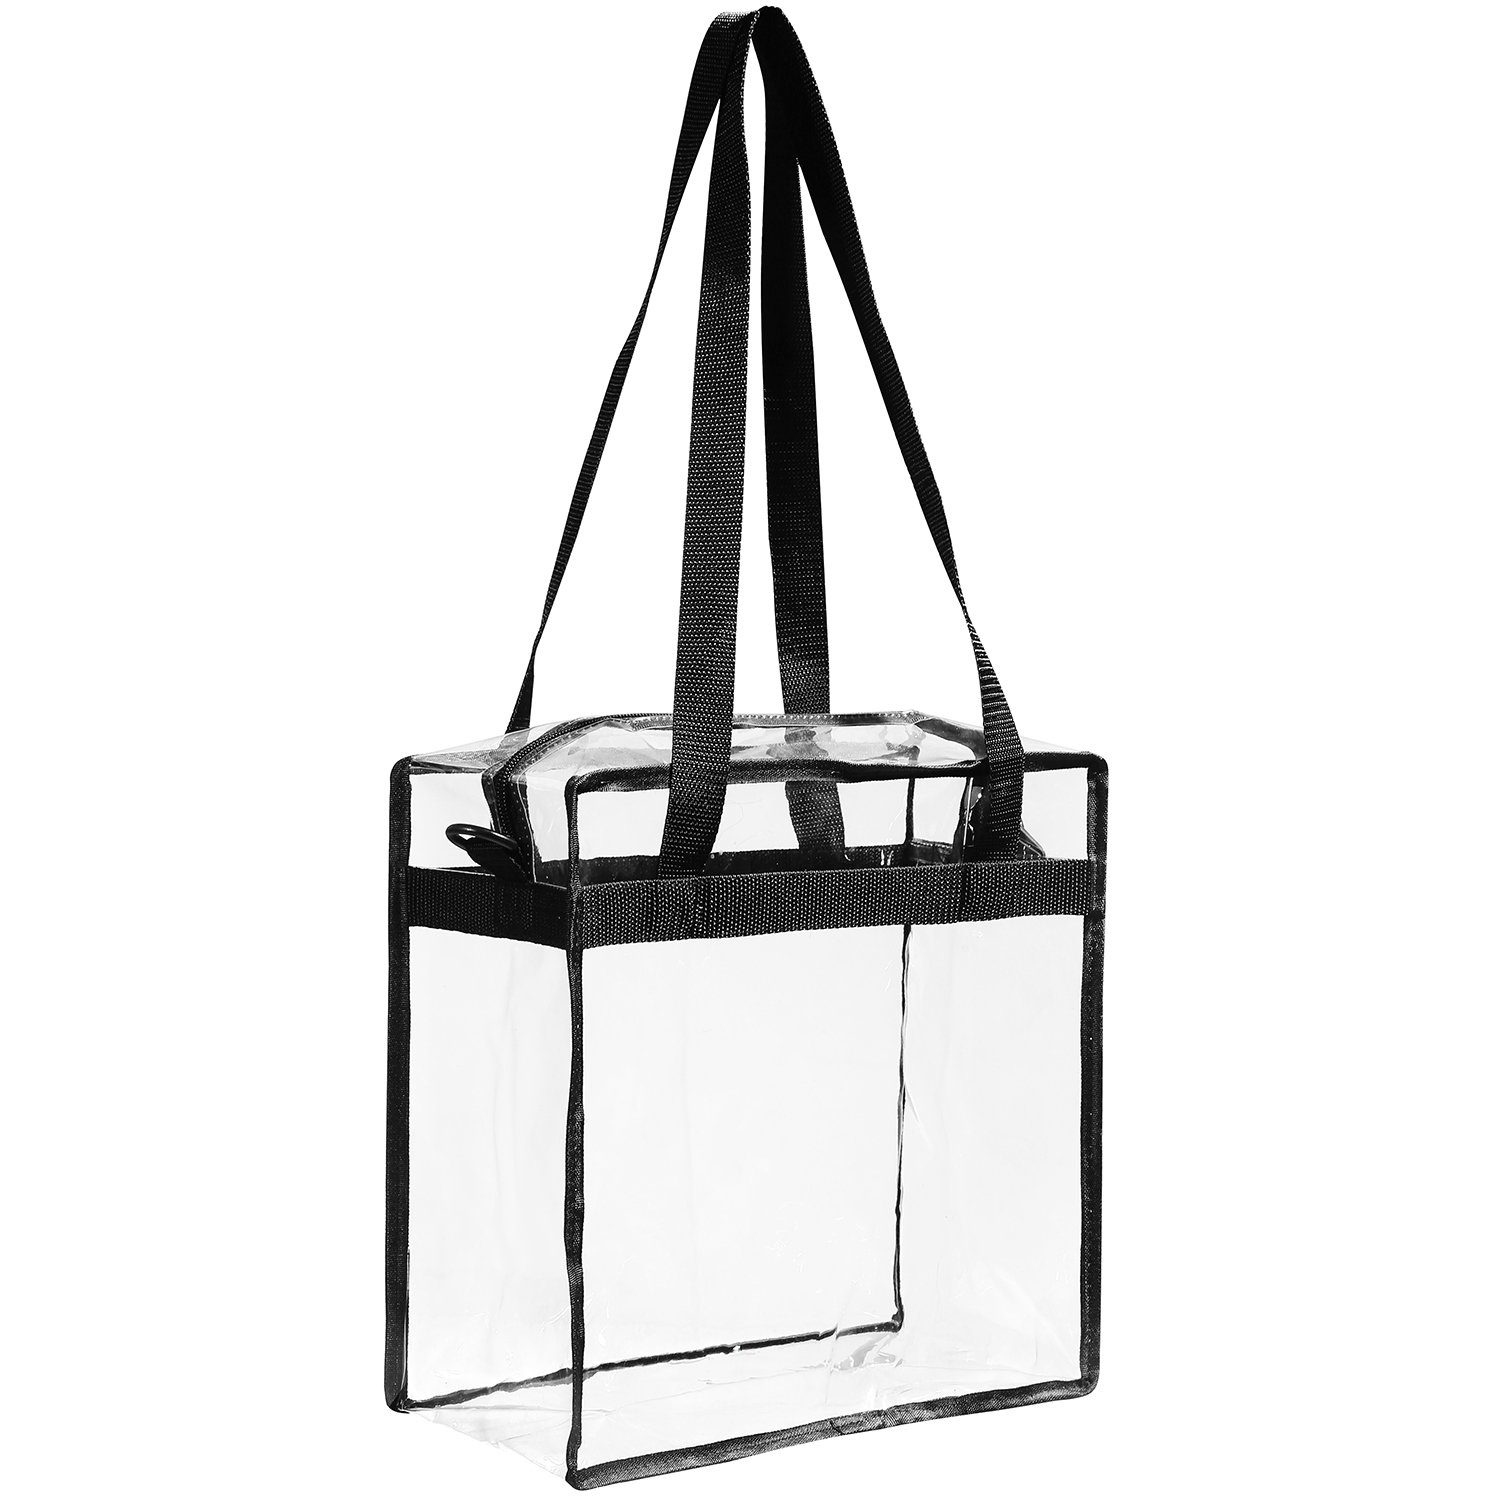 "Clear Bags NFL & PGA Stadium Approved - The Clear Tote Bag with Zipper Closure is Perfect for Work, Sports Games.Cross-Body Messenger Shoulder Bag w Adjustable Strap -12"" X 12"" X 6"" (Two Bag) by BAGAIL (Image #6)"